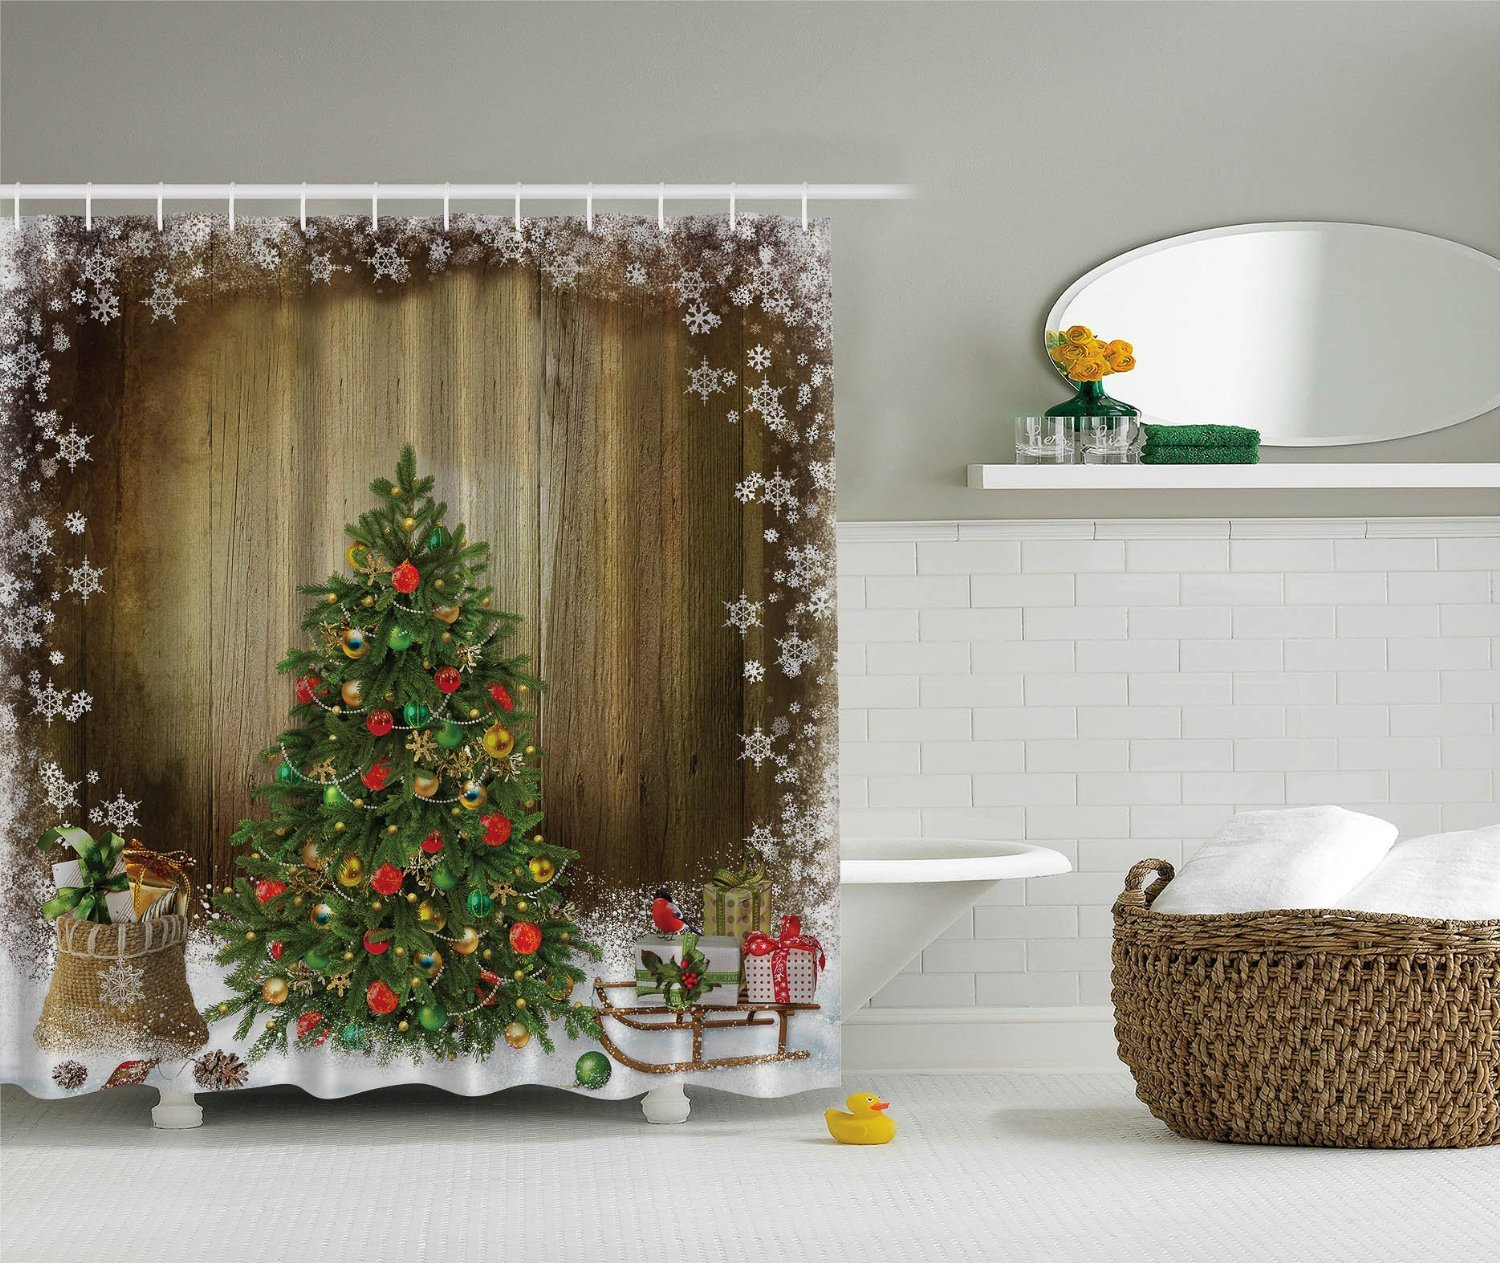 Kitchen Christmas Curtains Amazon Com: Christmas Trees Shower Curtains